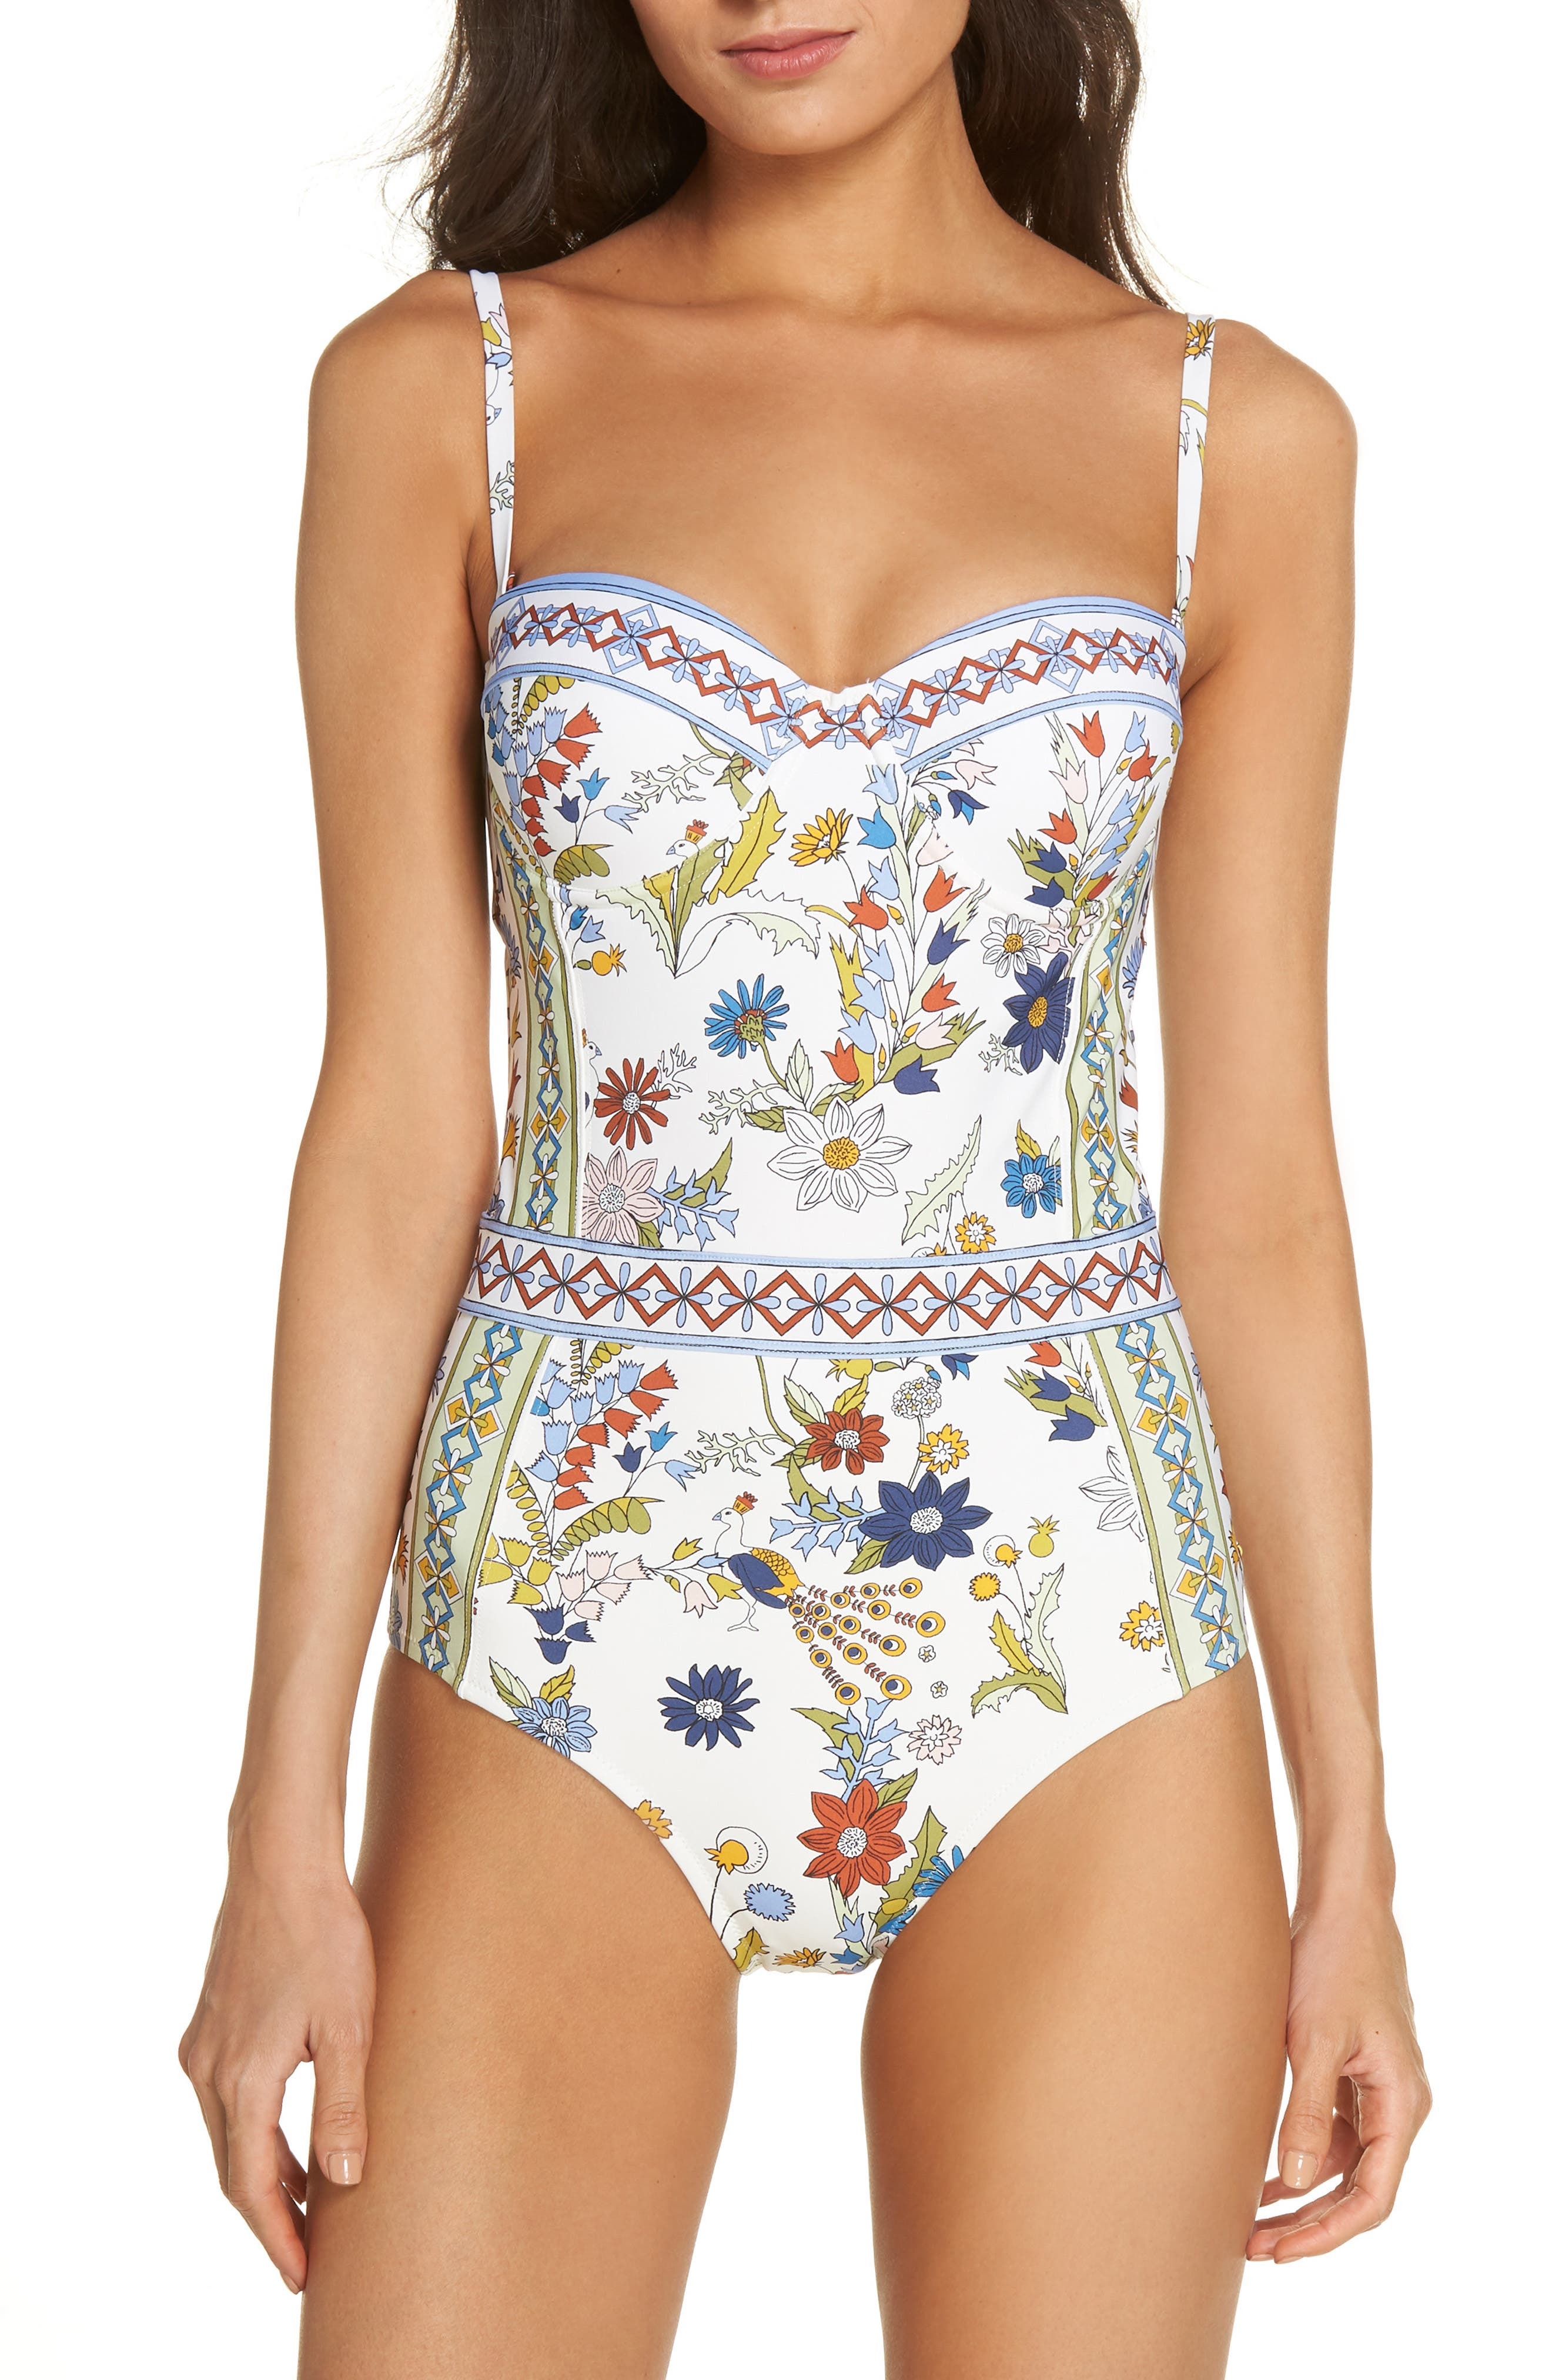 Meadow Folly Underwire One-Piece Swimsuit,                             Alternate thumbnail 2, color,                             900